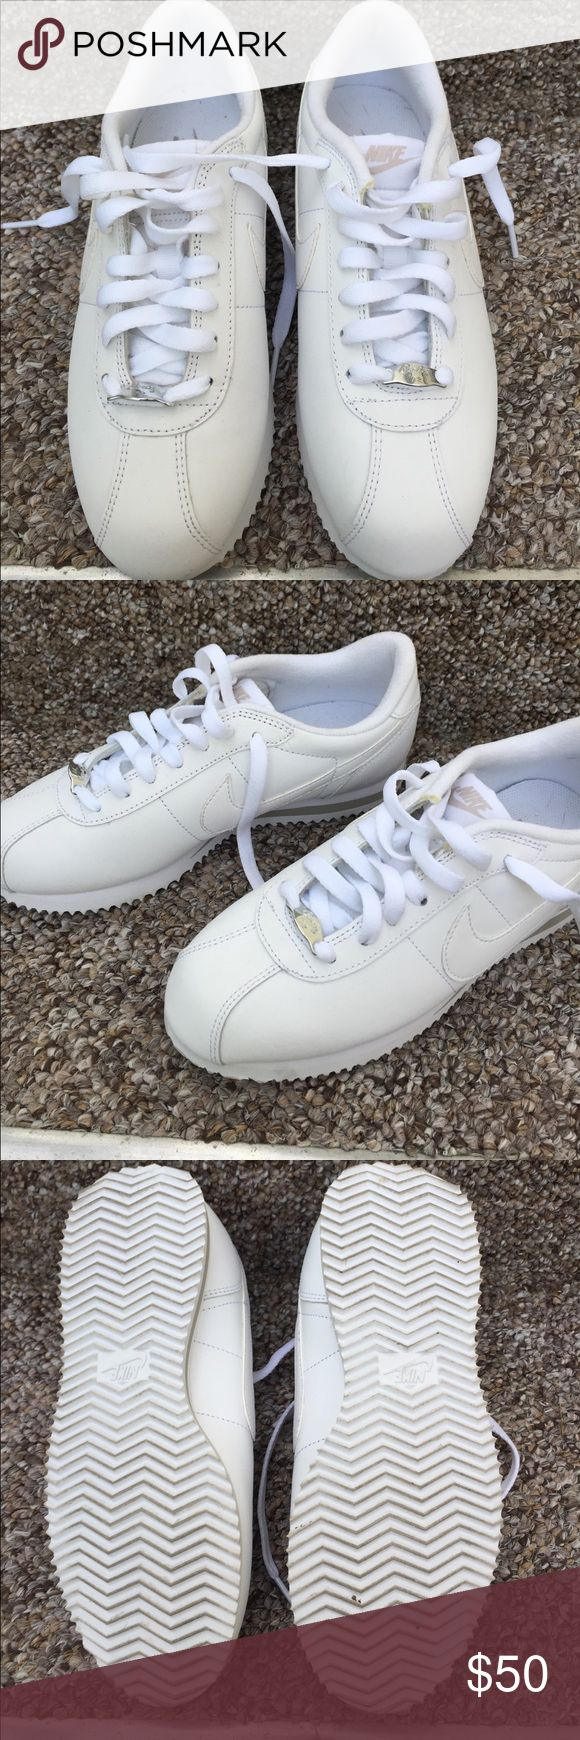 Women's Nike Cortez White Size 6.5 These shoes have been worn once! My feet are too wide for them so never wore them again. Nike Shoes Sneakers